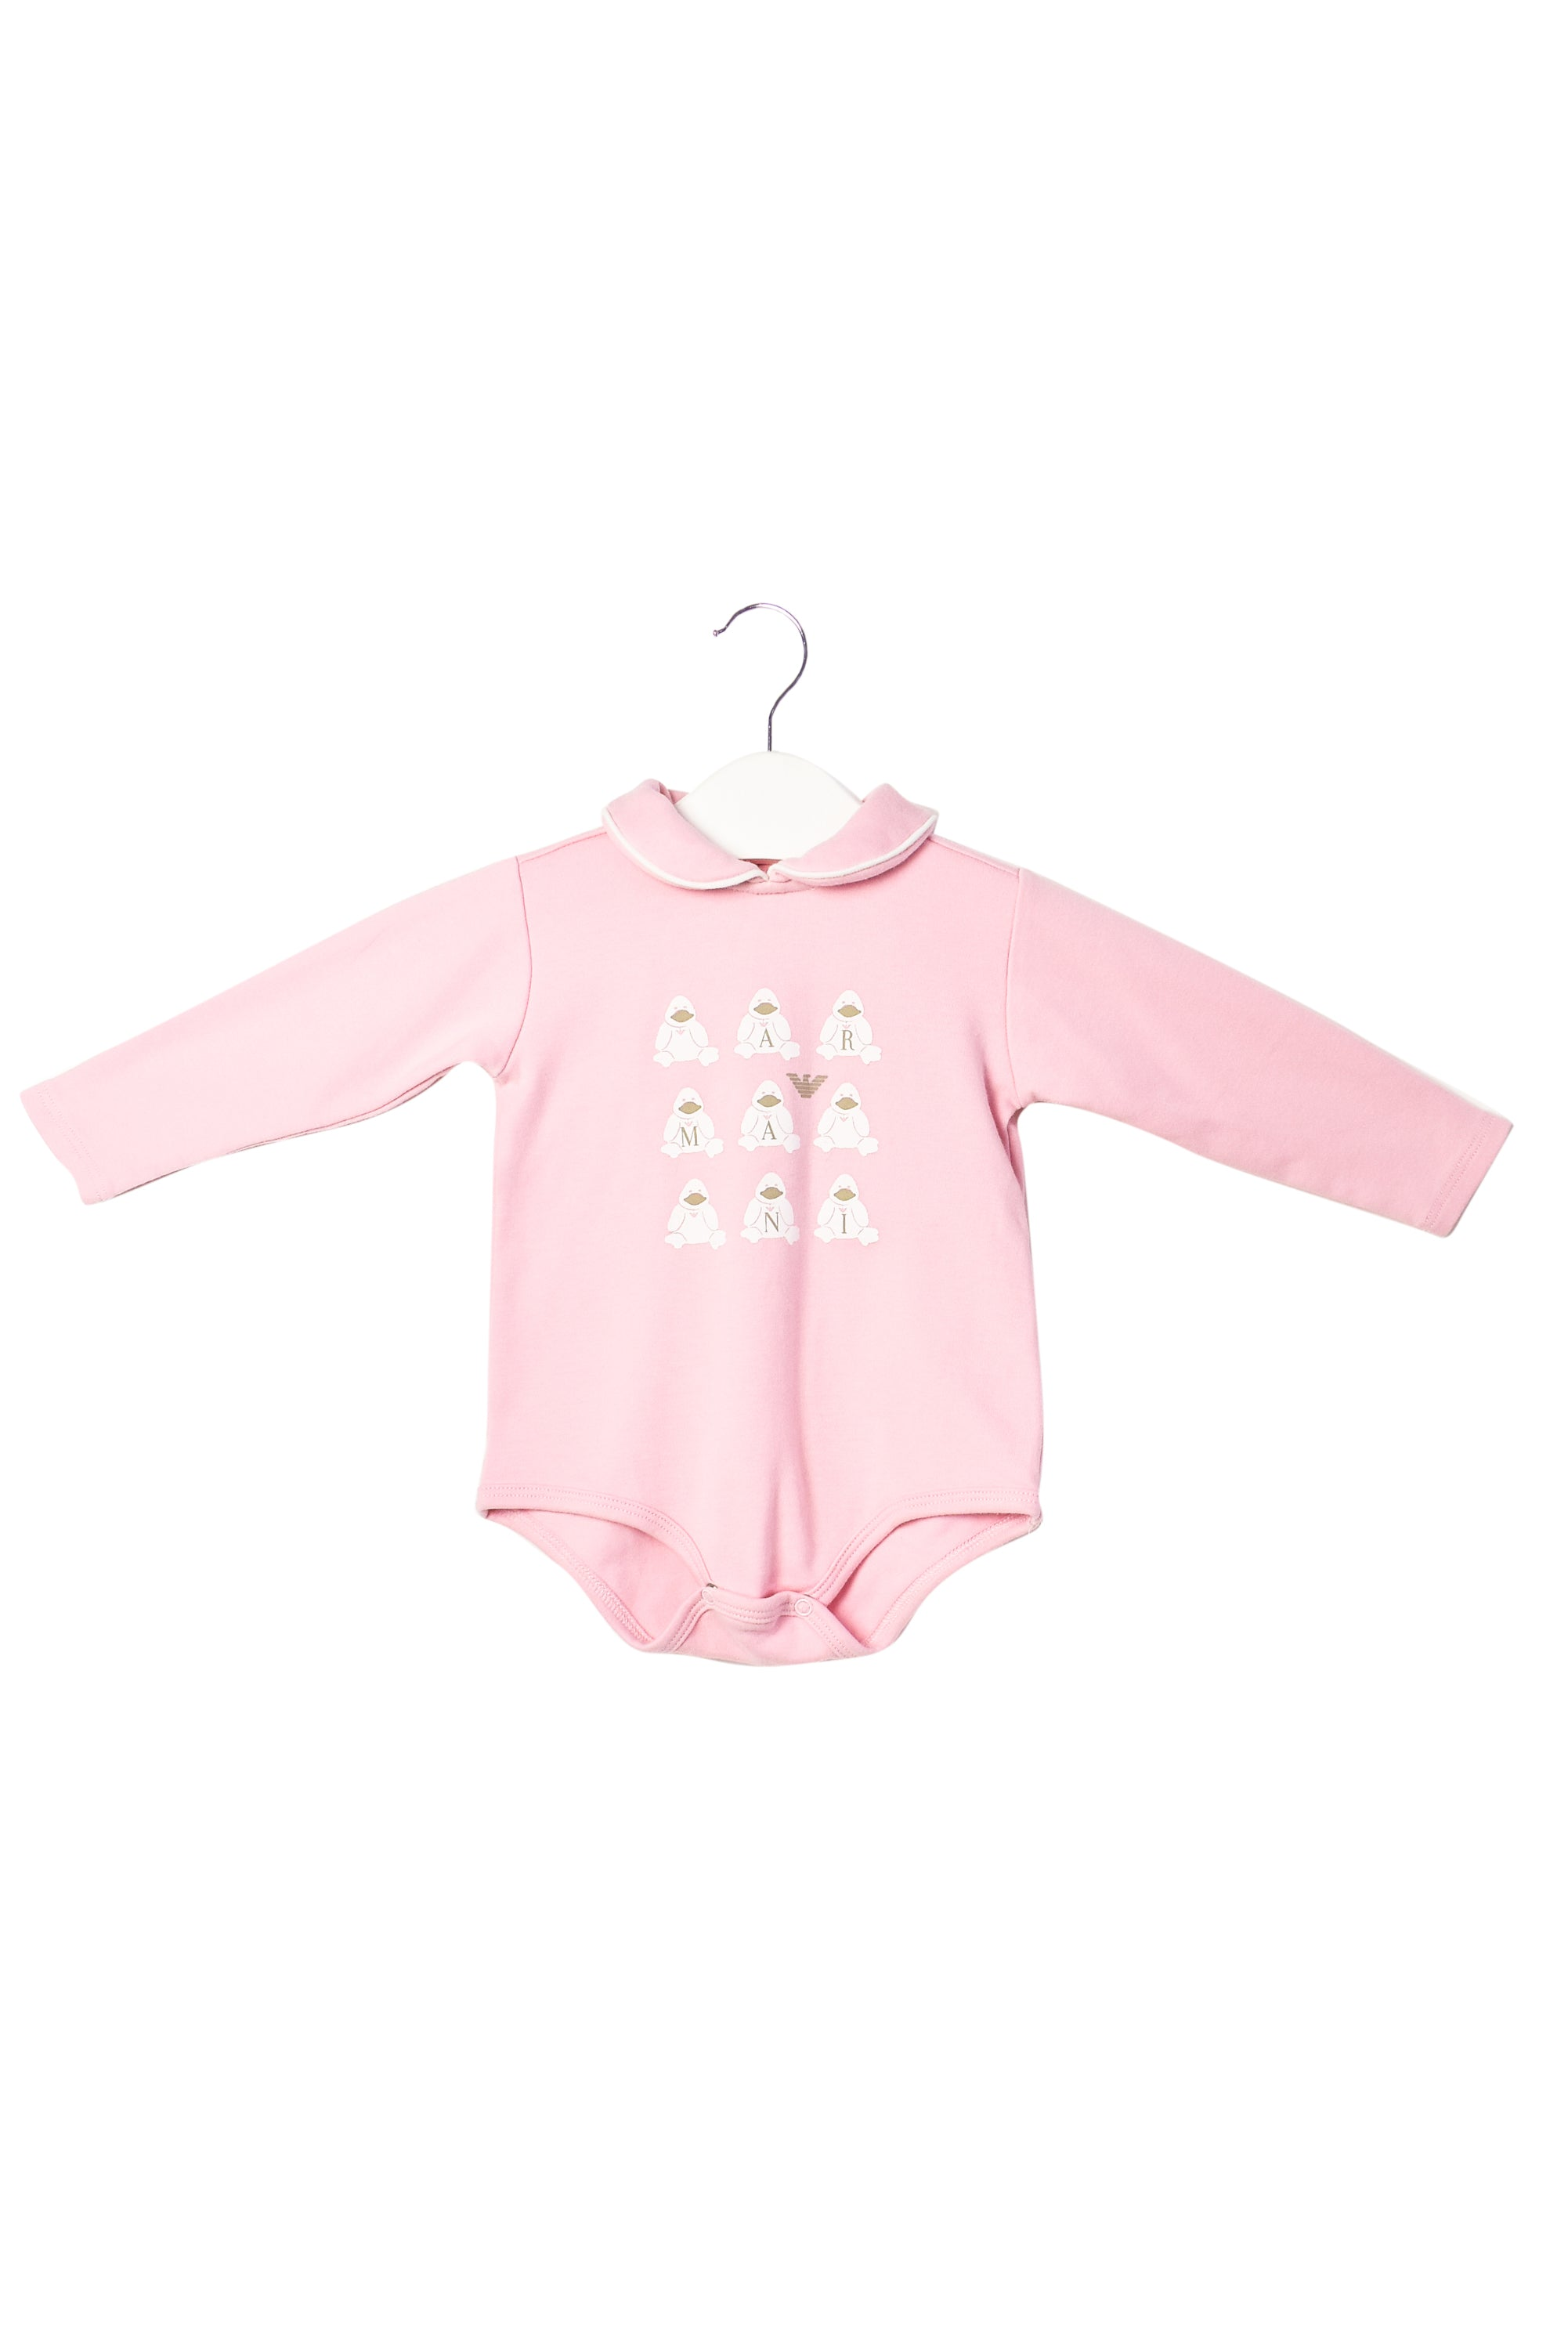 10006289 Armani Baby~Bodysuit 9M at Retykle